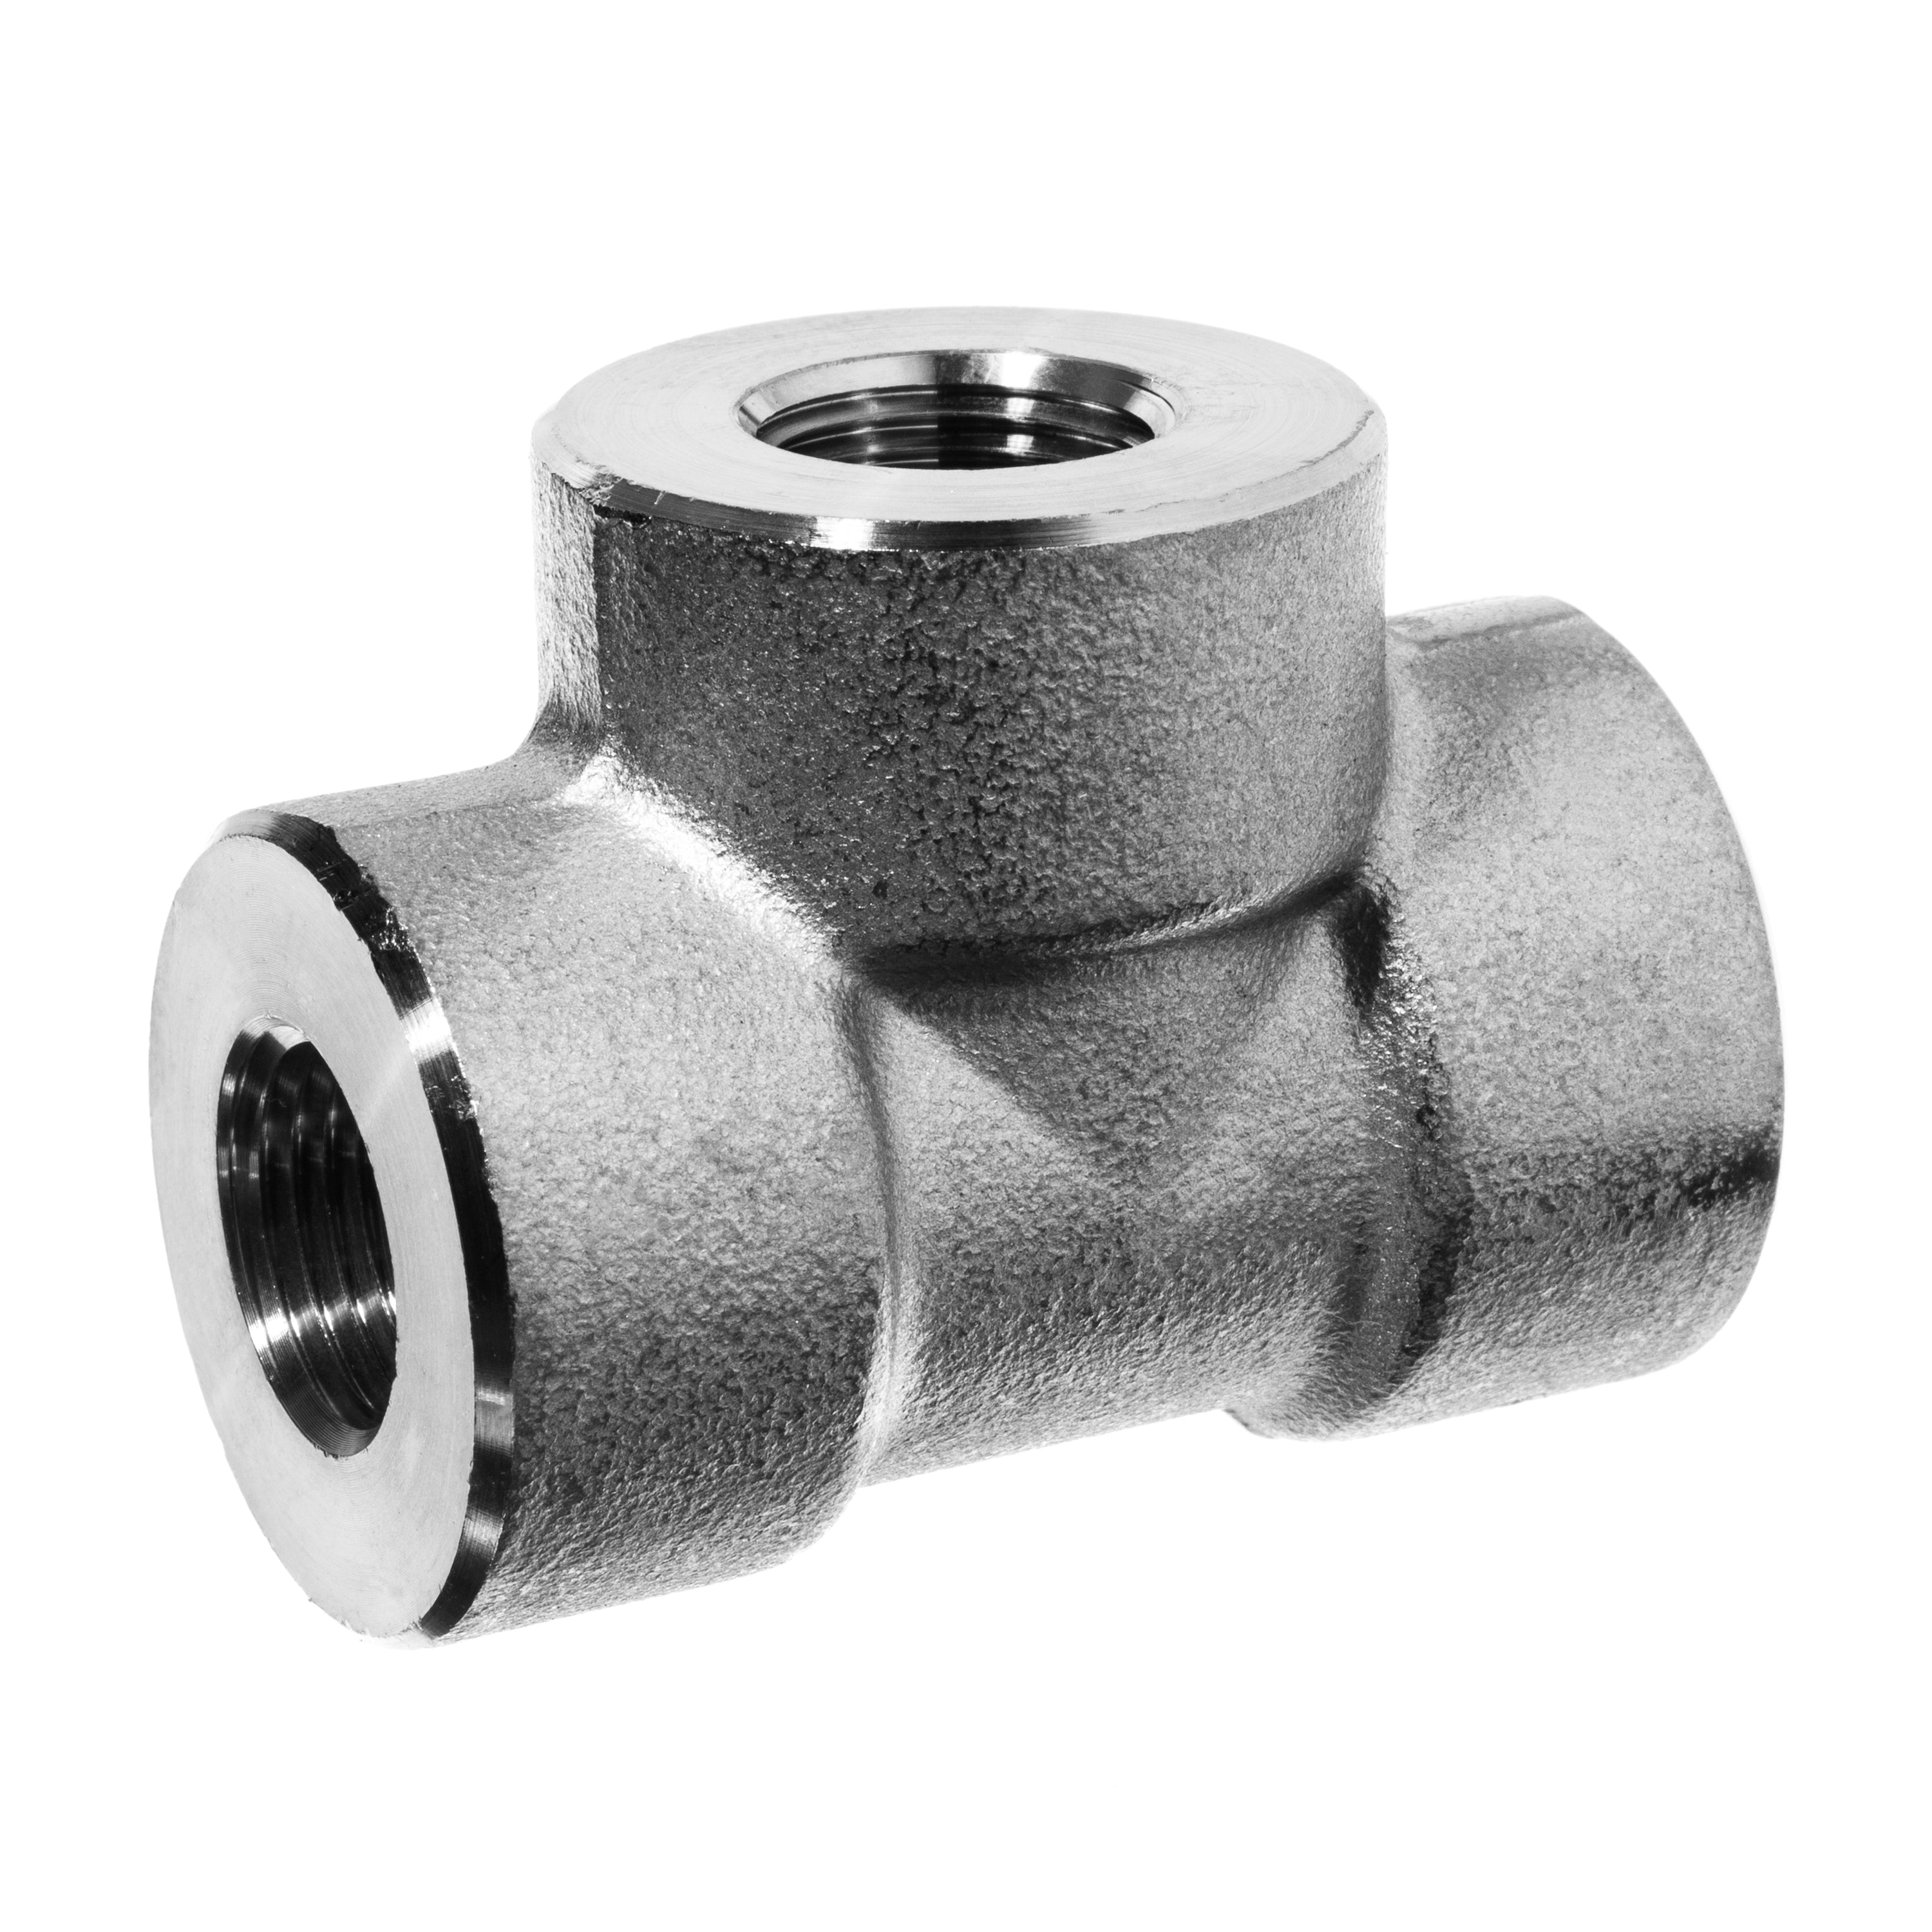 Class 3000 316 SS Pipe Fittings